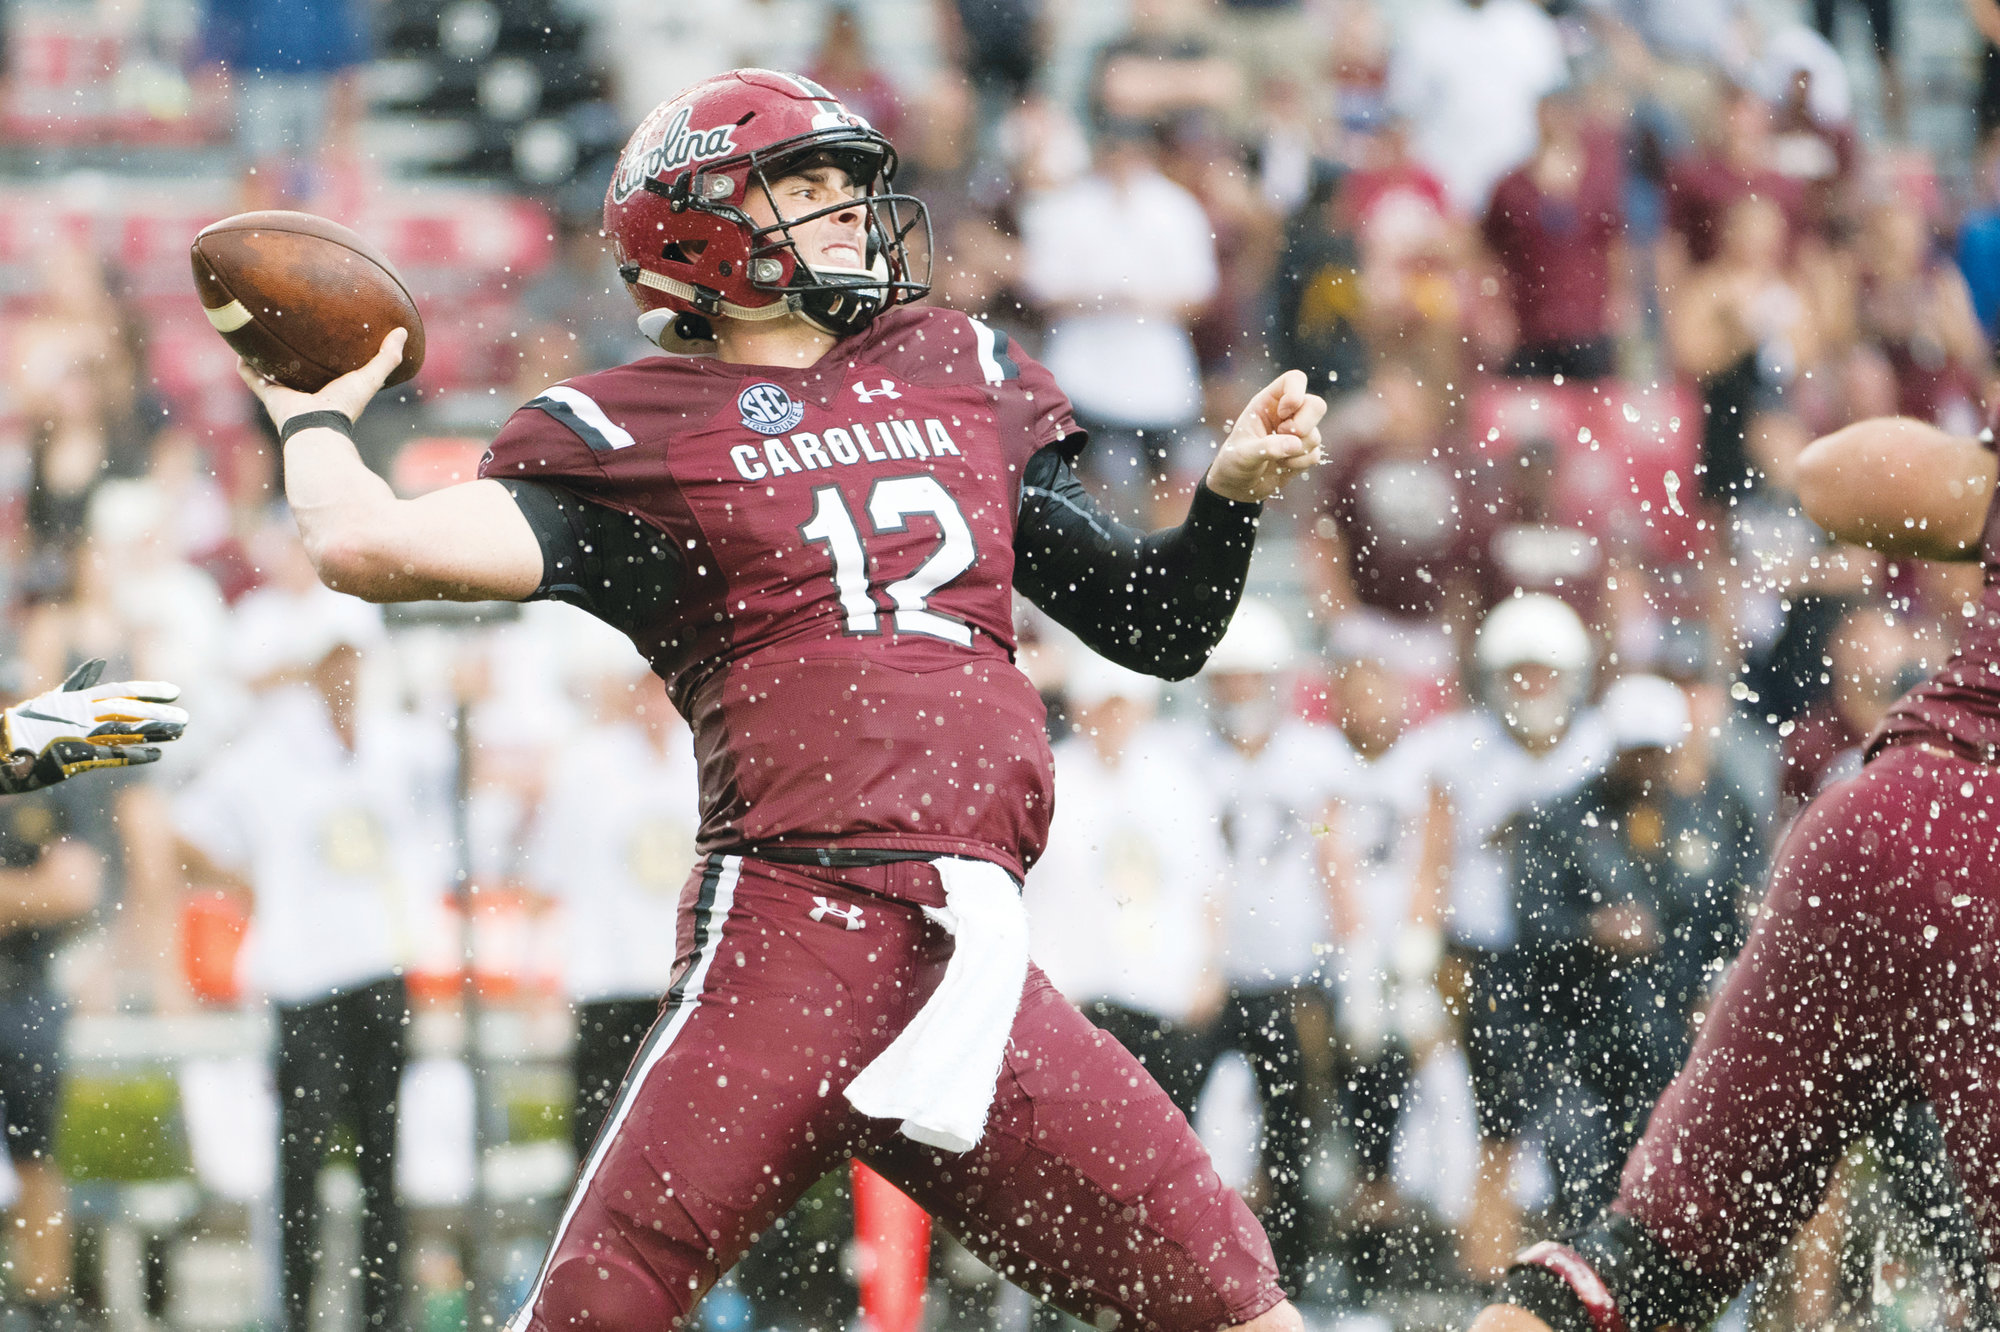 South Carolina quarterback Michael Scarnecchia (12) attempts a pass  against Missouri during the second half of the Gamecocks' 37-35 victory on Saturday at Williams-Brice Stadium in Columbia.